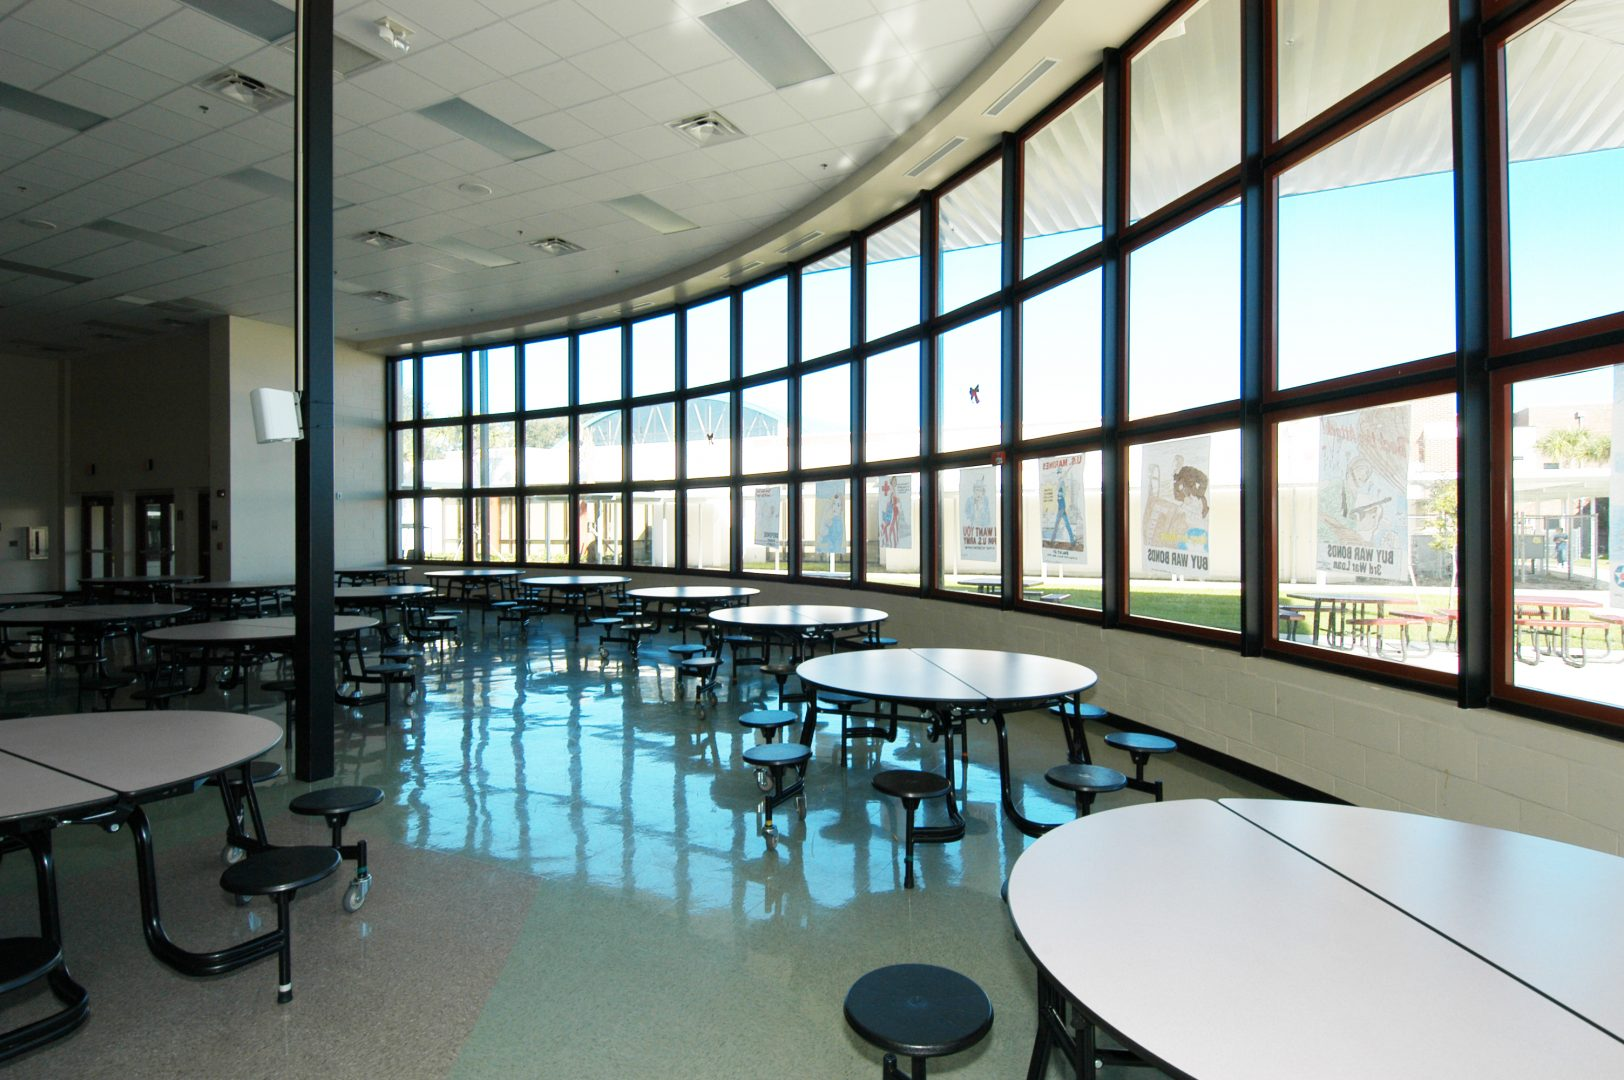 Universities In Charlotte Nc >> Lakeview Middle School | Wharton Smith, Inc.